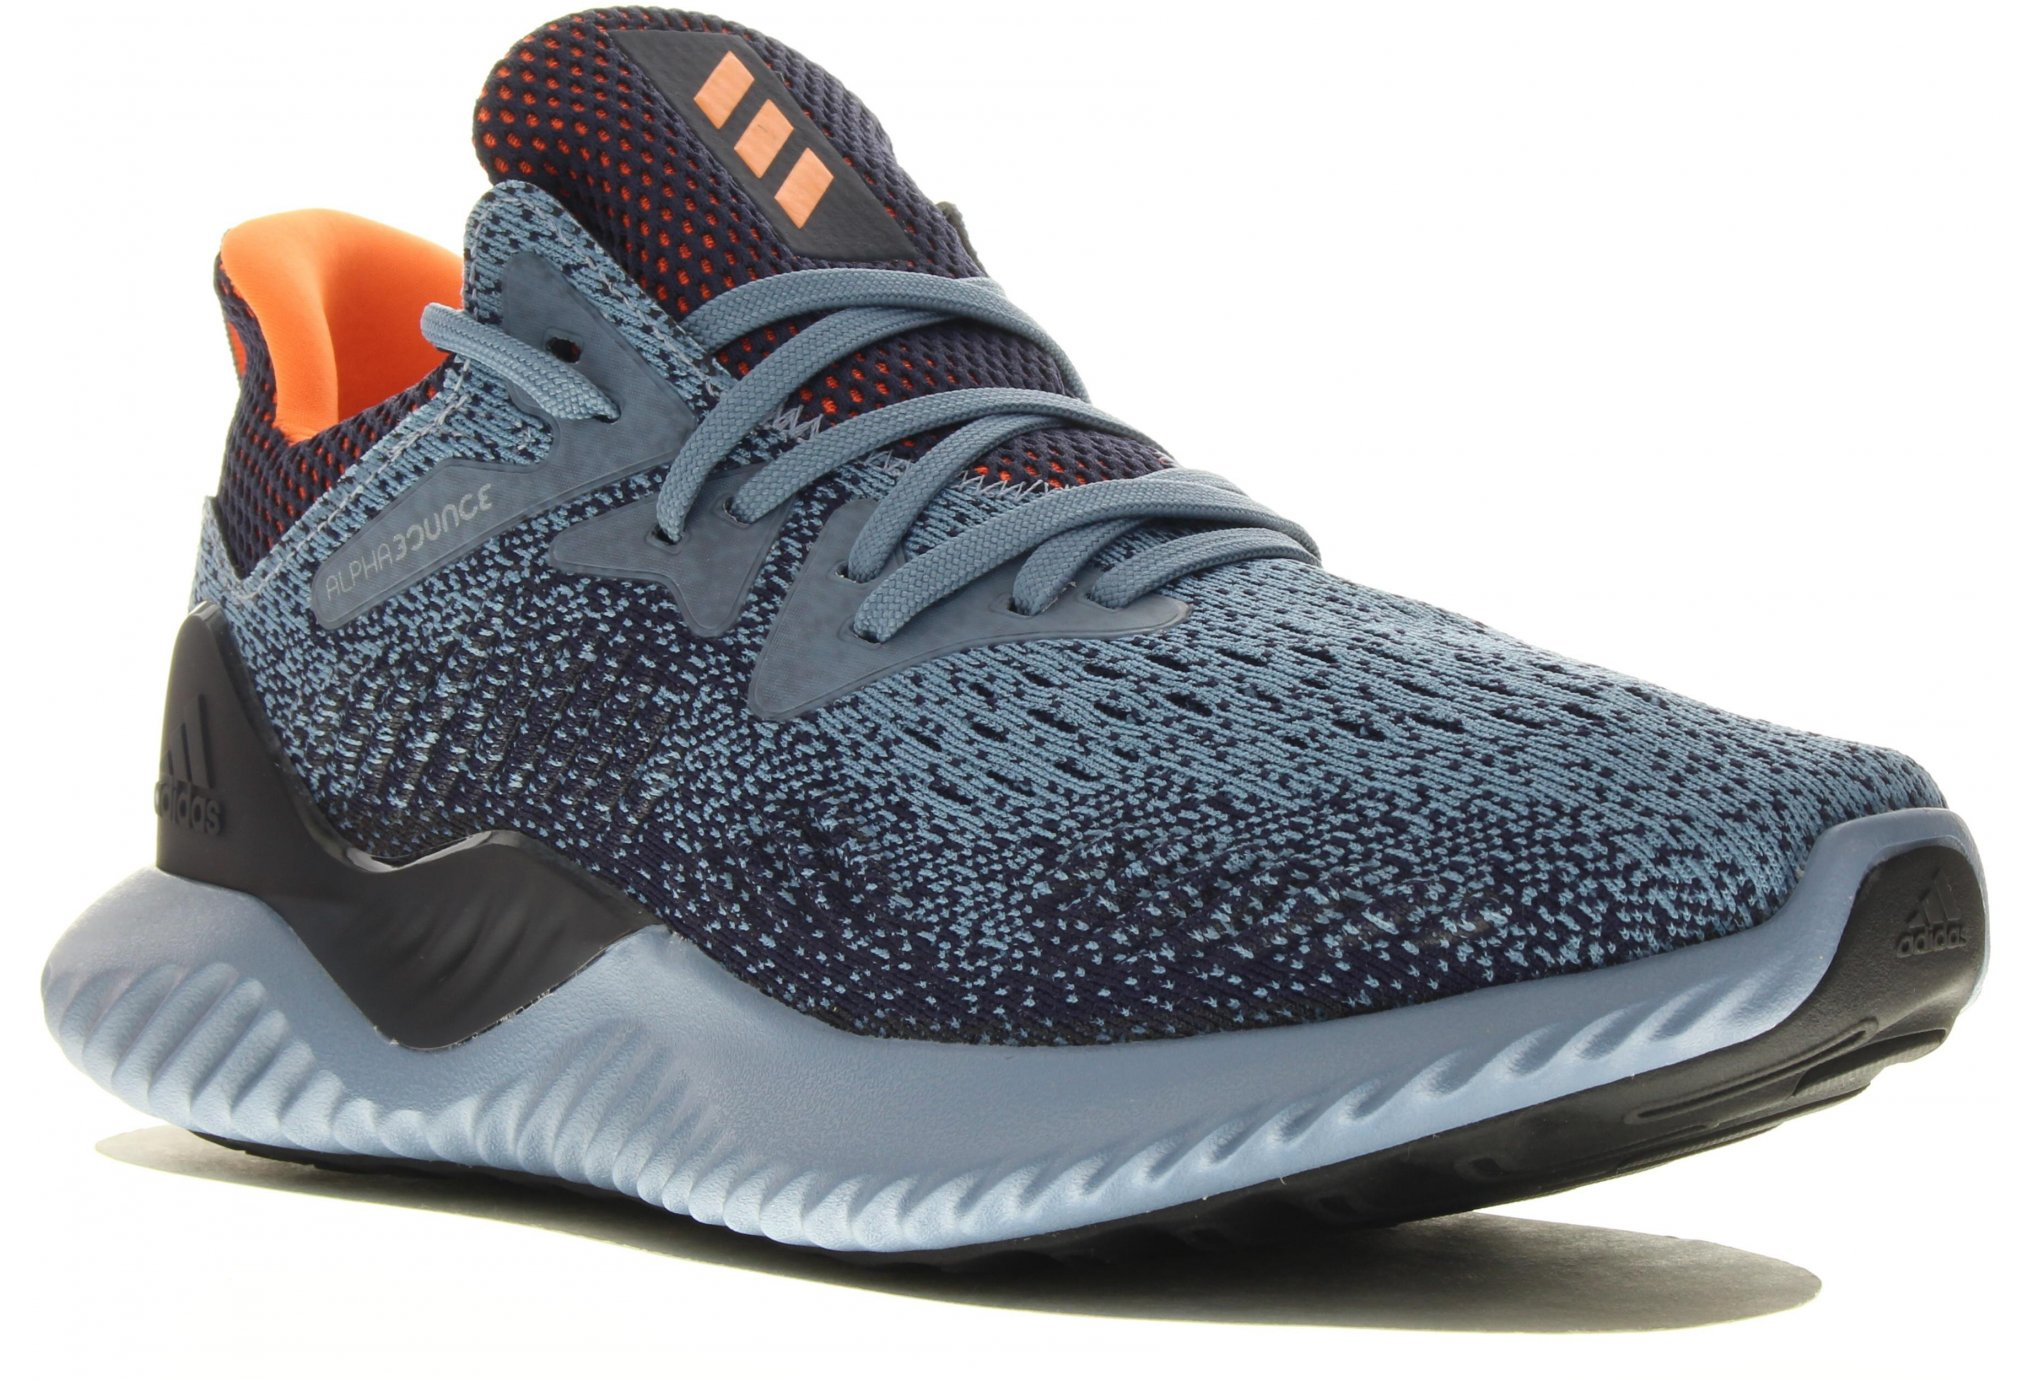 Adidas Alphabounce beyond m chaussures homme